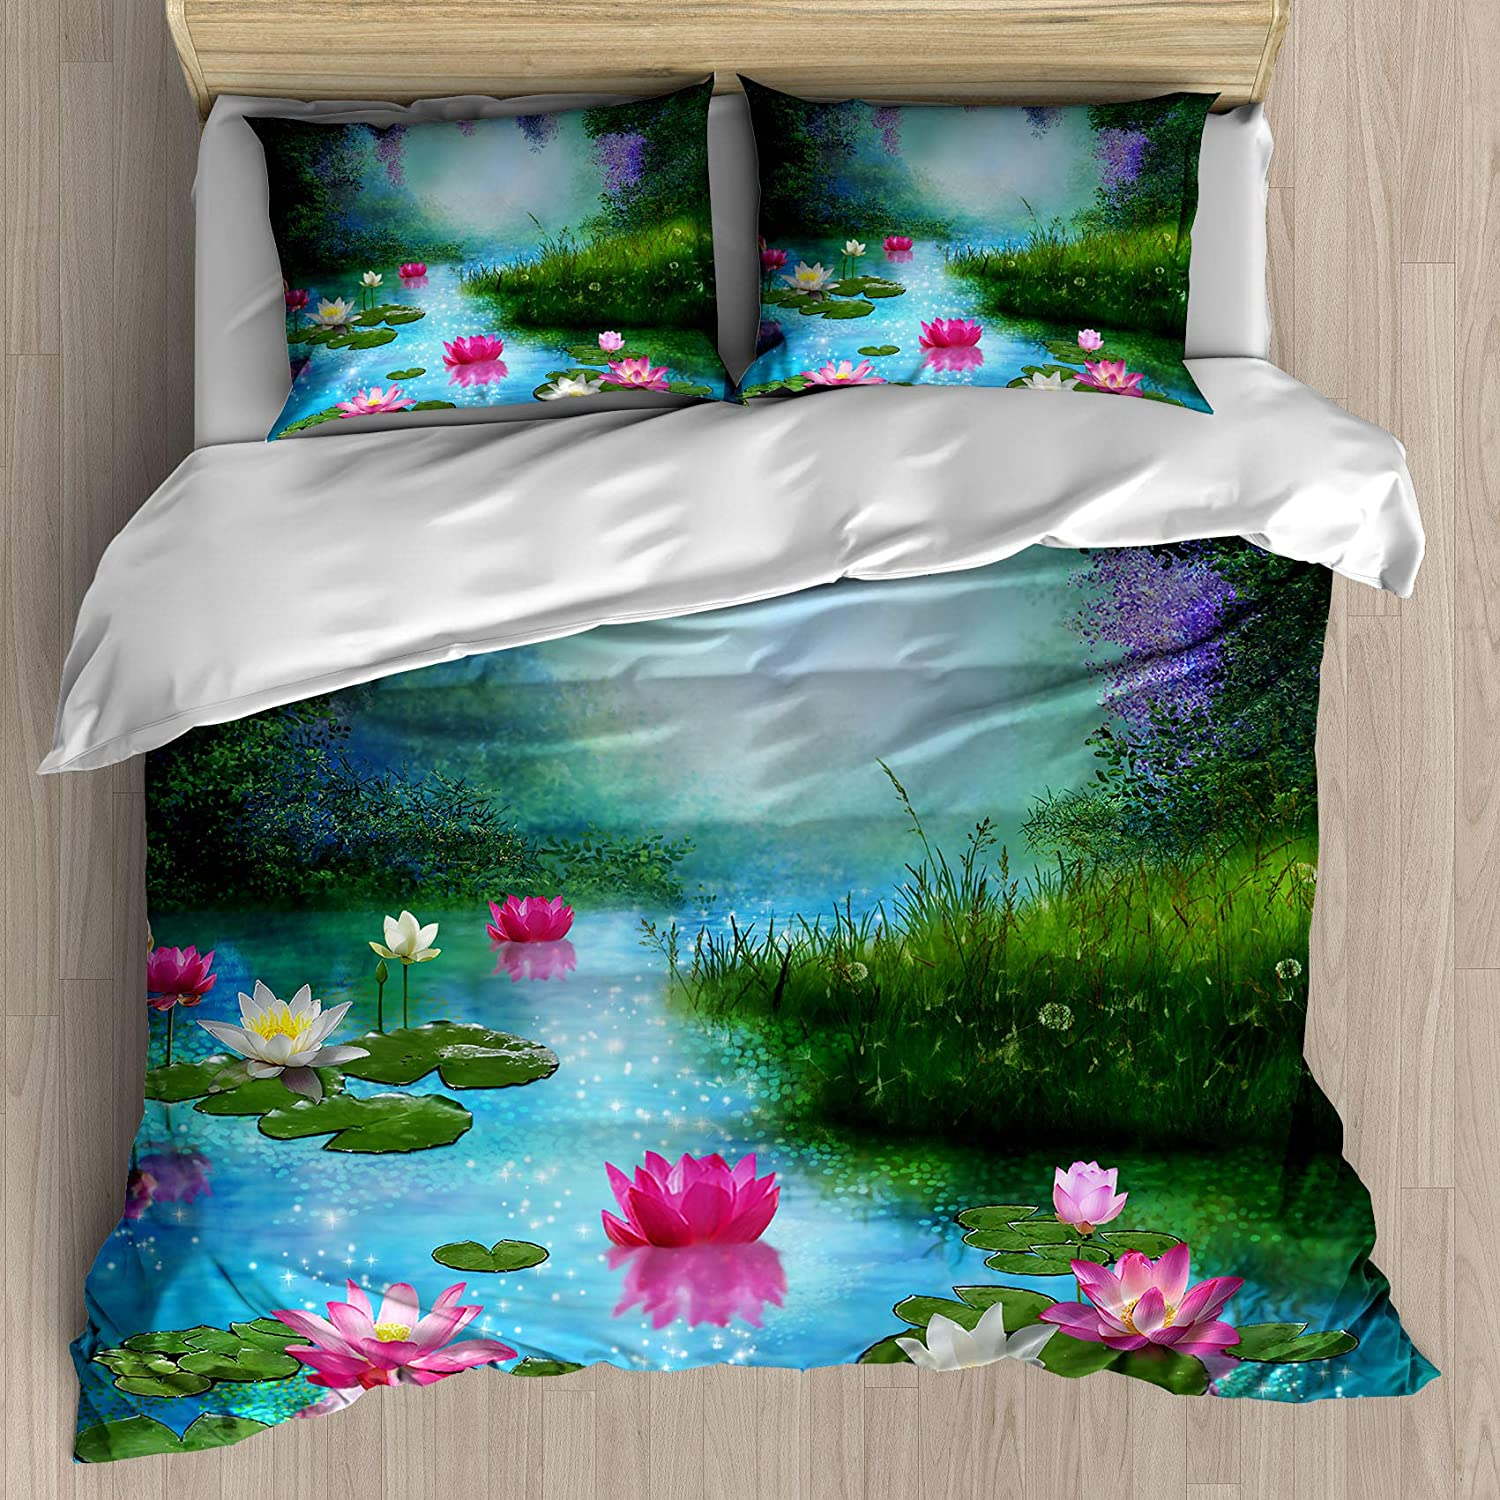 FEIDANNO Flowers Duvet Cover Set Queen Size, Fantasy Pond with Water Lilies Floating Romantic Lotus Fairy Tale Digital Art, Decorative 3 Piece Bedding Set with 2 Pillow Shams,(Dark Blue,Queen)